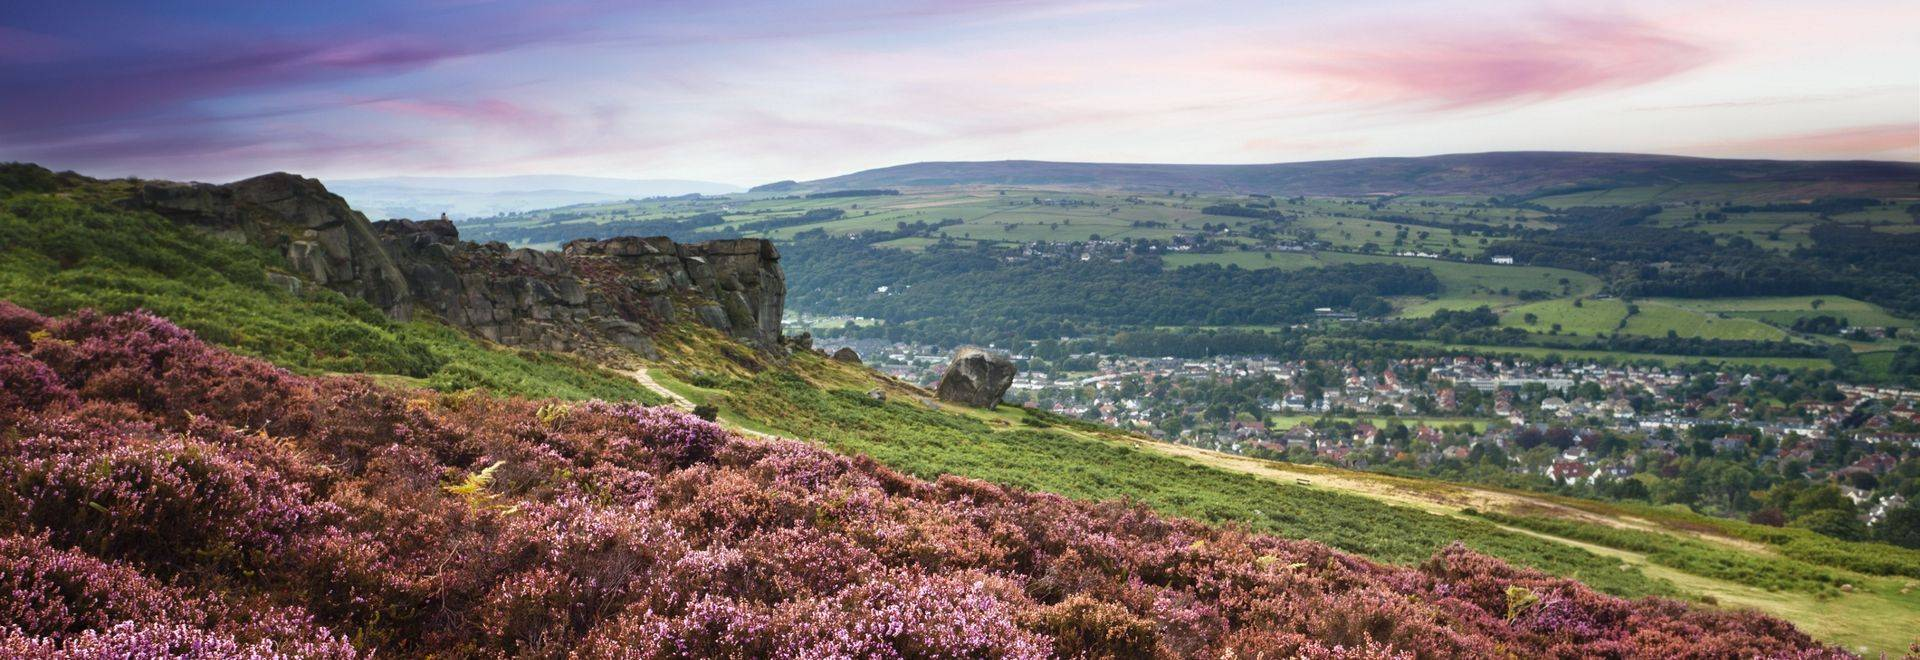 A wonderful evening over Ilkley